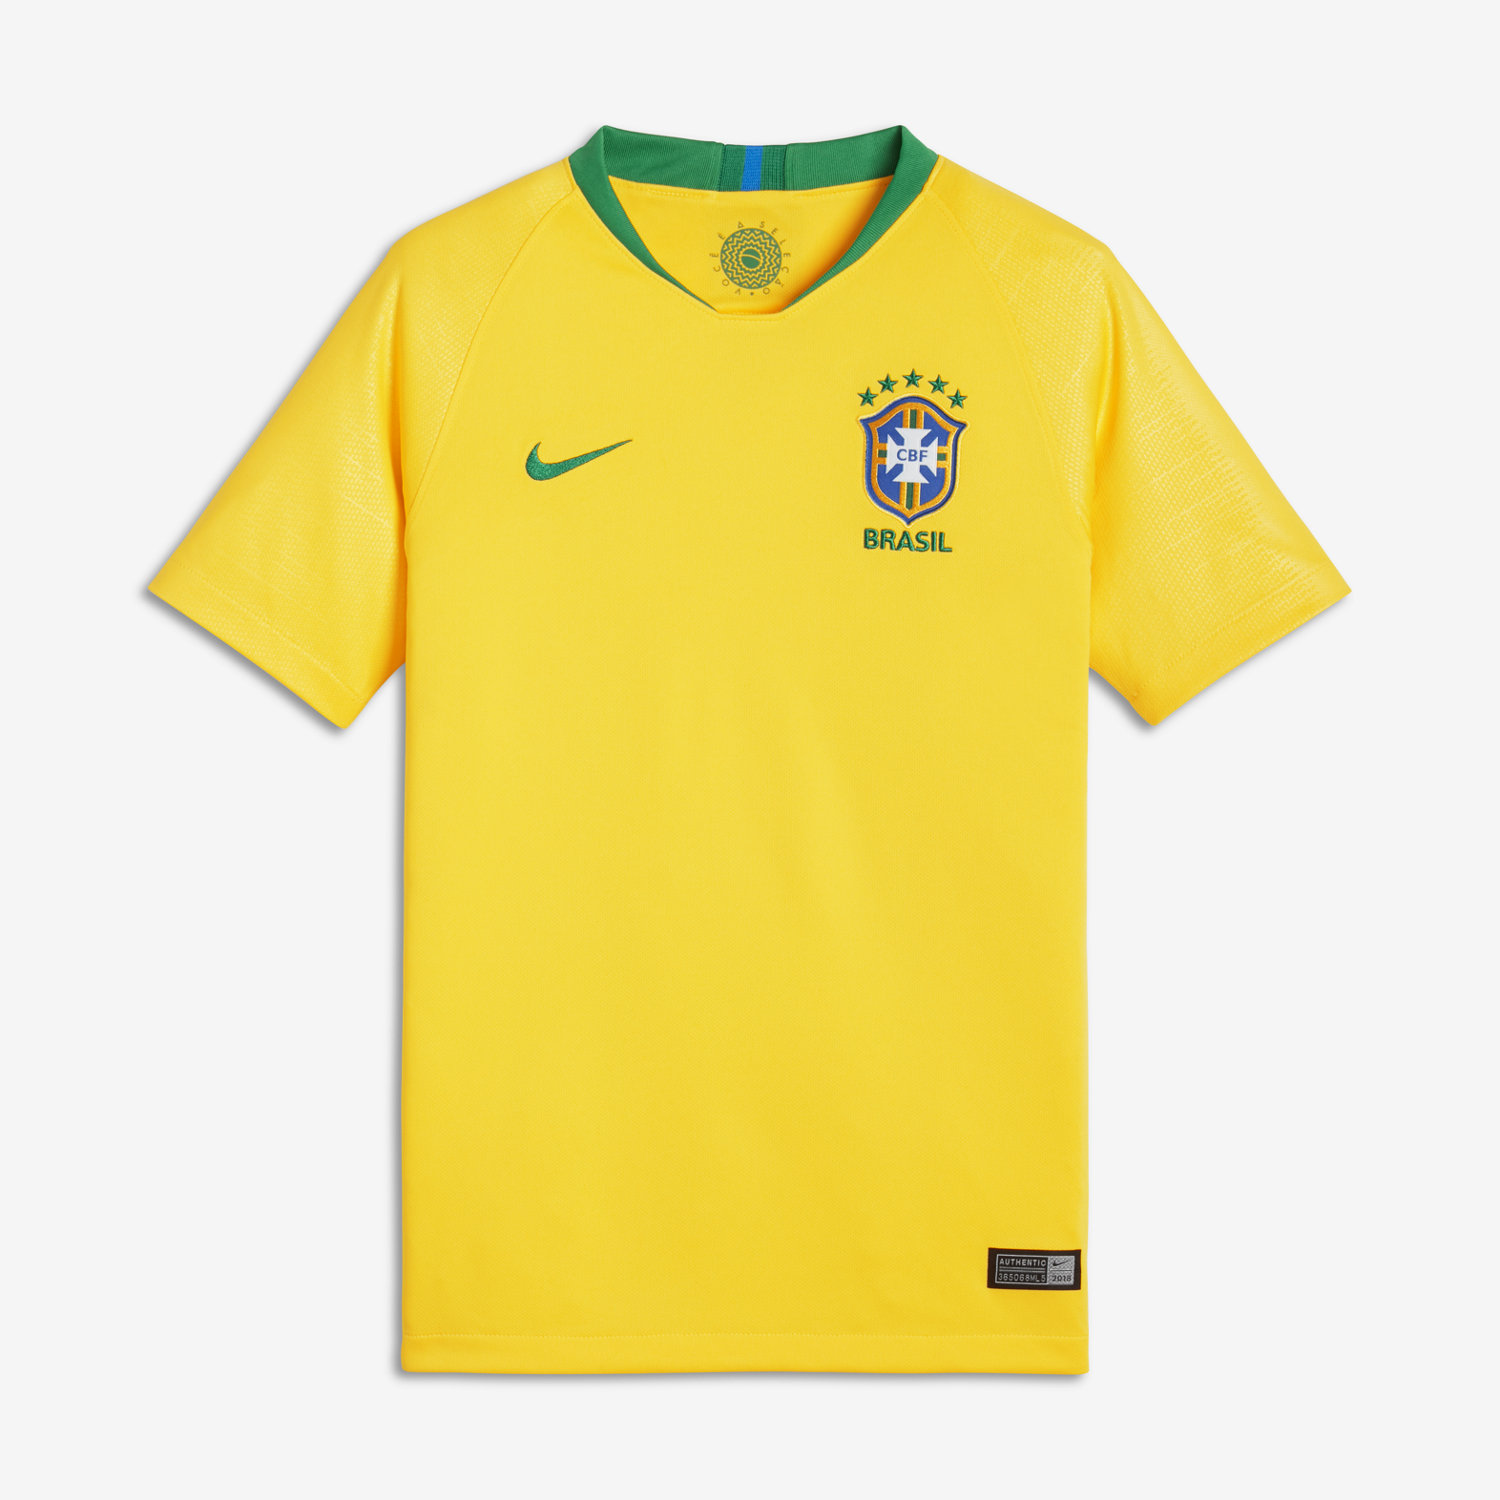 2018 Brazil CBF Stadium Home Older Kids  Football Shirt. Nike.com IE 786b7d328ae45